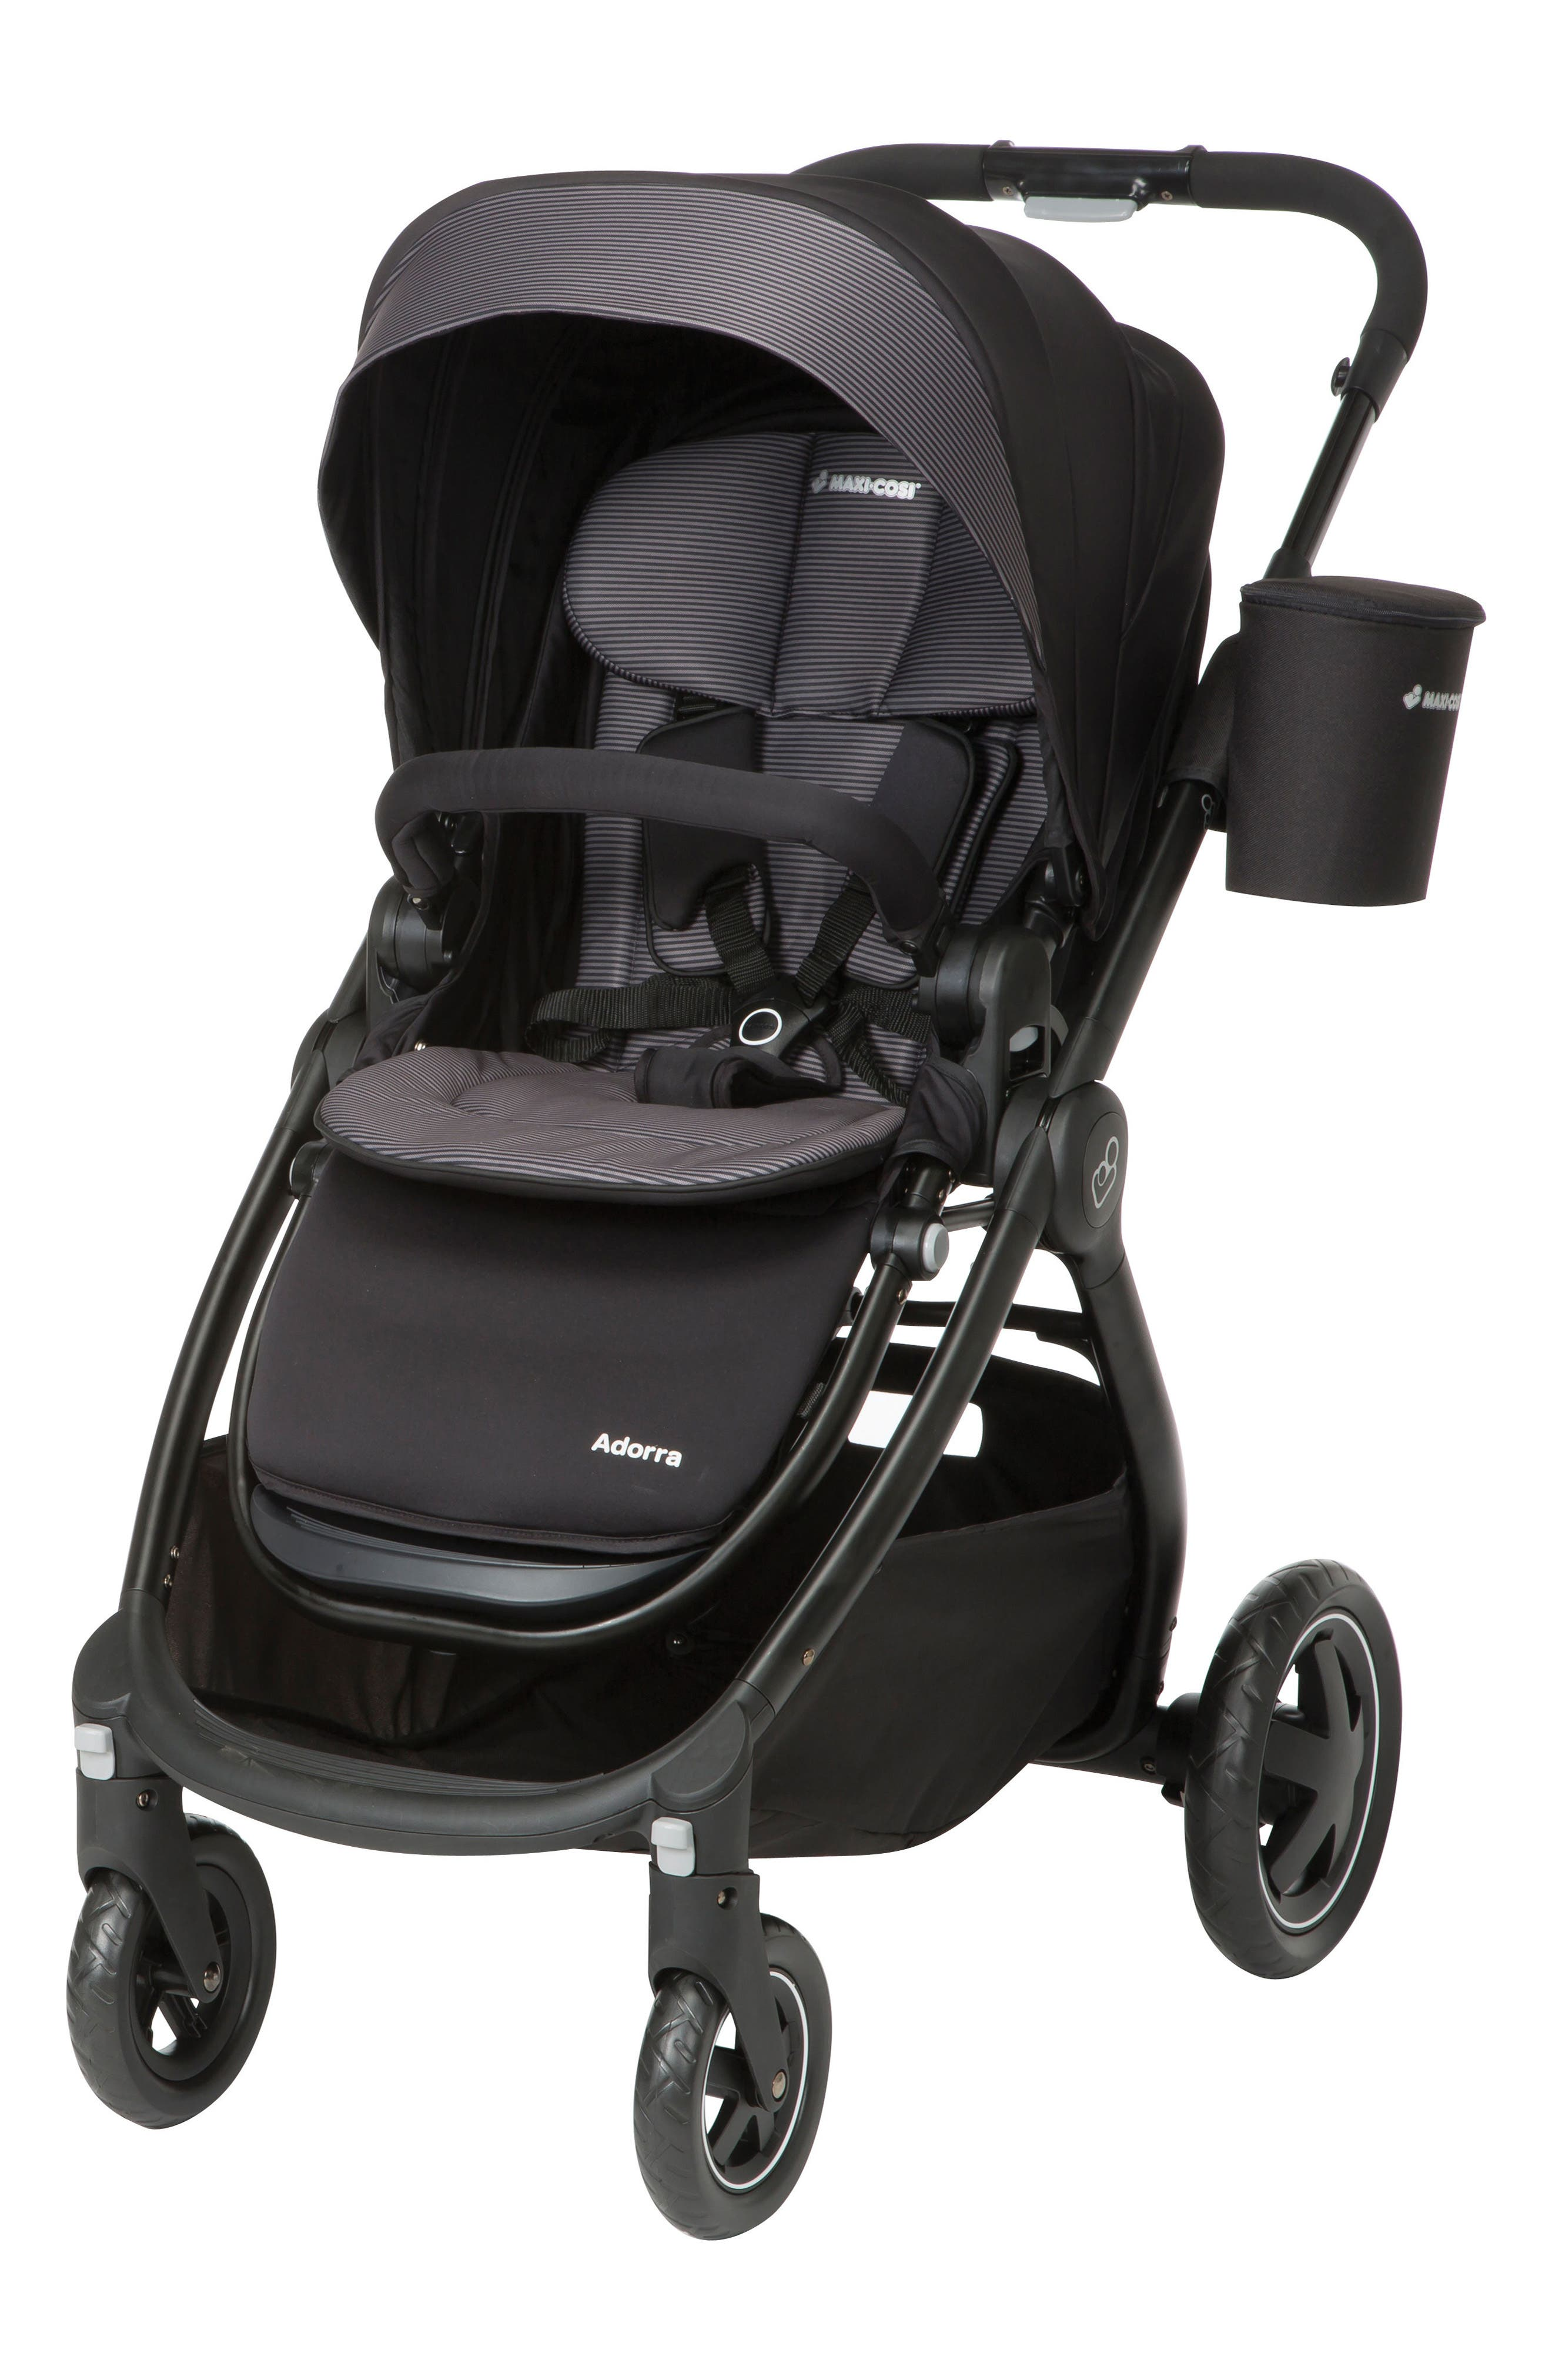 Adorra Stroller,                             Alternate thumbnail 11, color,                             002